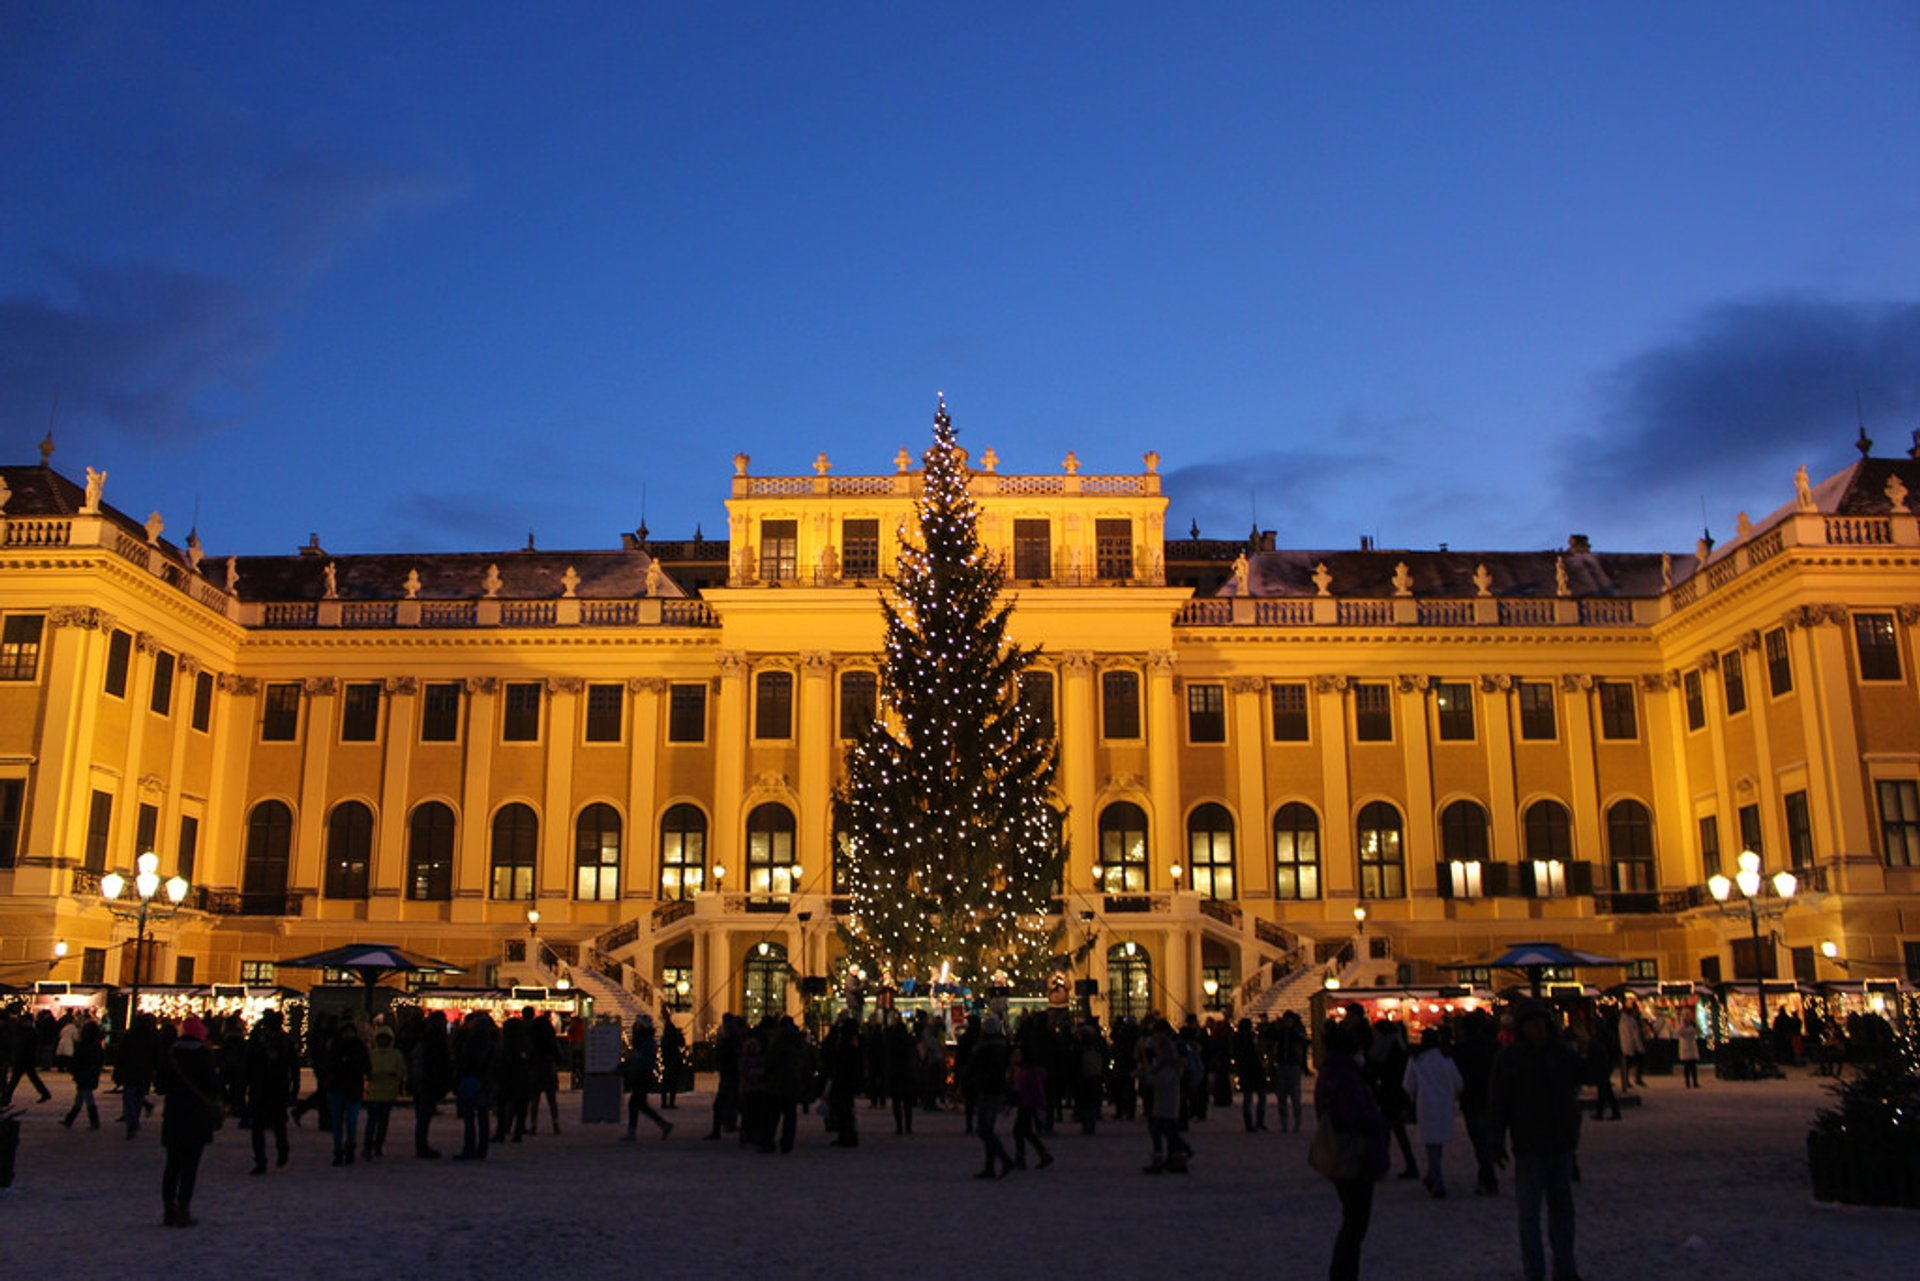 Christmas Market at Schönbrunn Palace in Vienna 2020